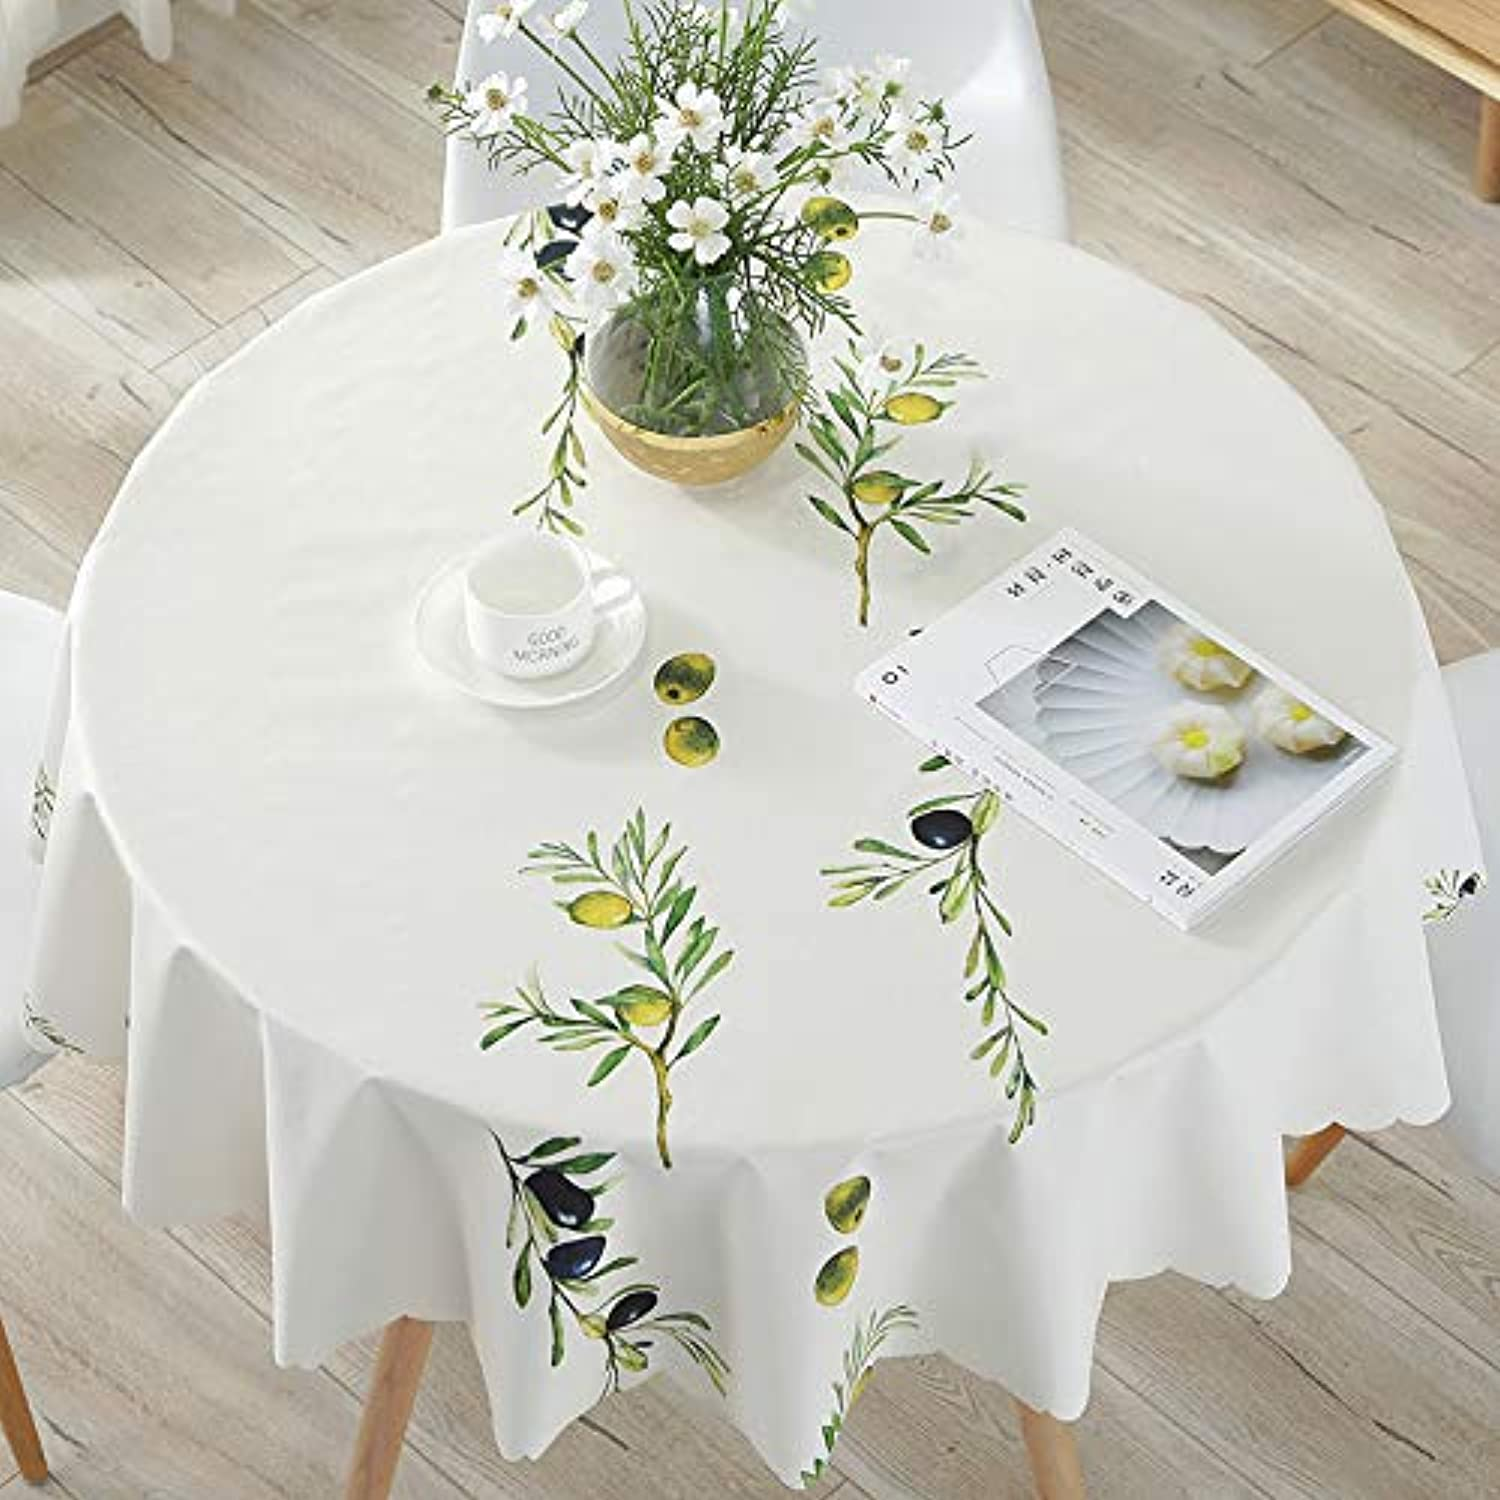 Creek Ywh Nordic PVC big round tablecloth fabric pad waterproof antiscalding oilproof disposable small round table cotton and linen small fresh, blueeberry fruit, 138 cm  180 cm